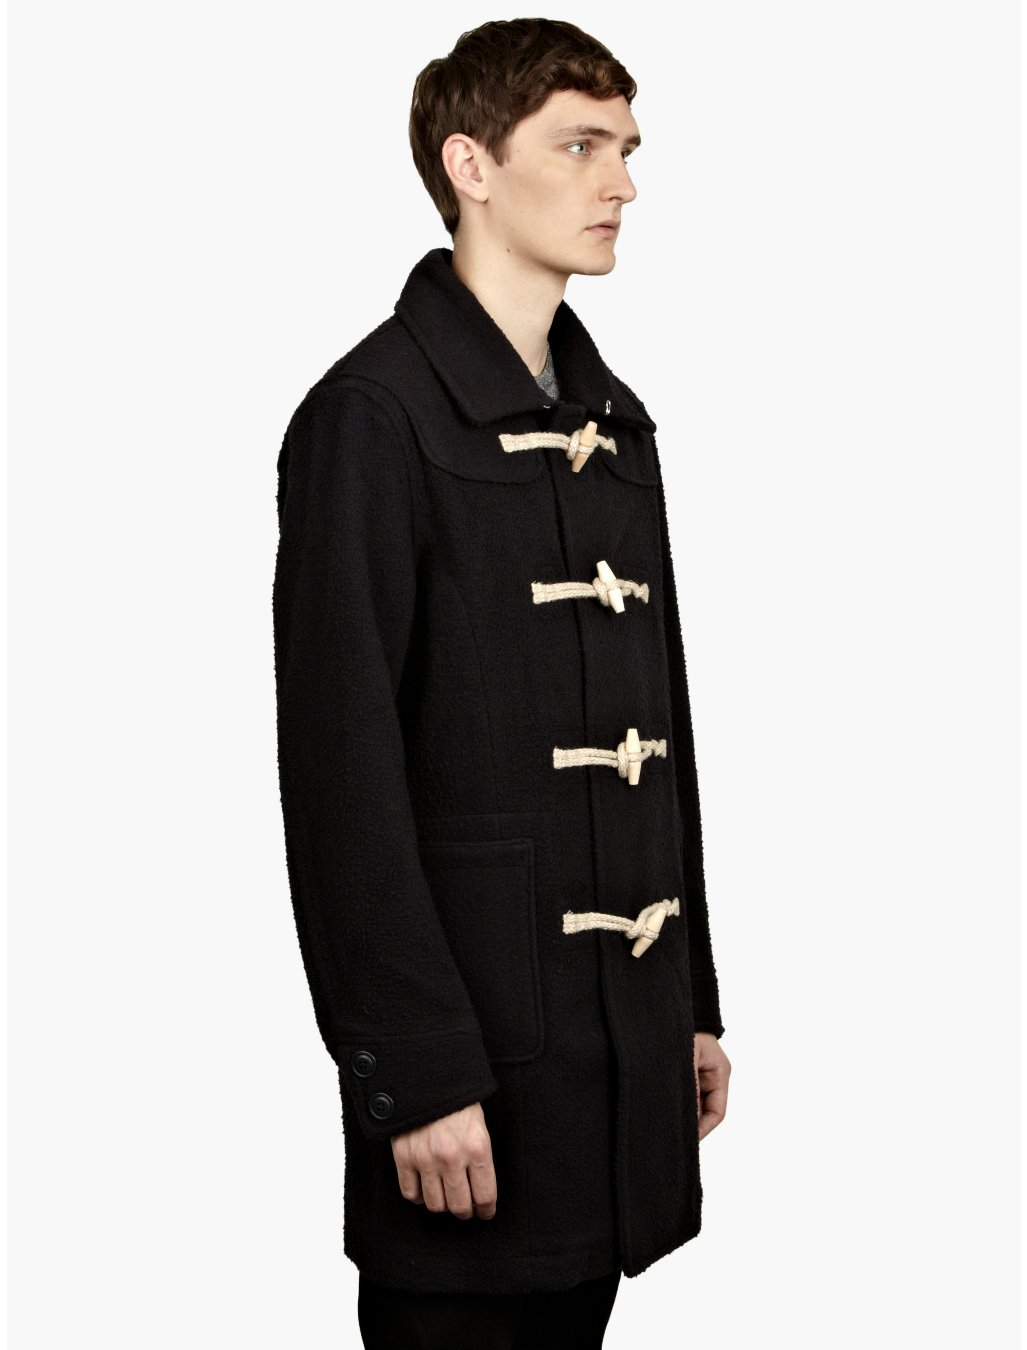 Find duffle coats men at ShopStyle. Shop the latest collection of duffle coats men from the most popular stores - all in one place. Hooded Duffle Coat Men Mens Toggle Duffle Coat Blue duffle coats men Black duffle coats men Gray duffle coats men Brown duffle coats men Green duffle coats men Duffle Coats Men + Save this search Showing.